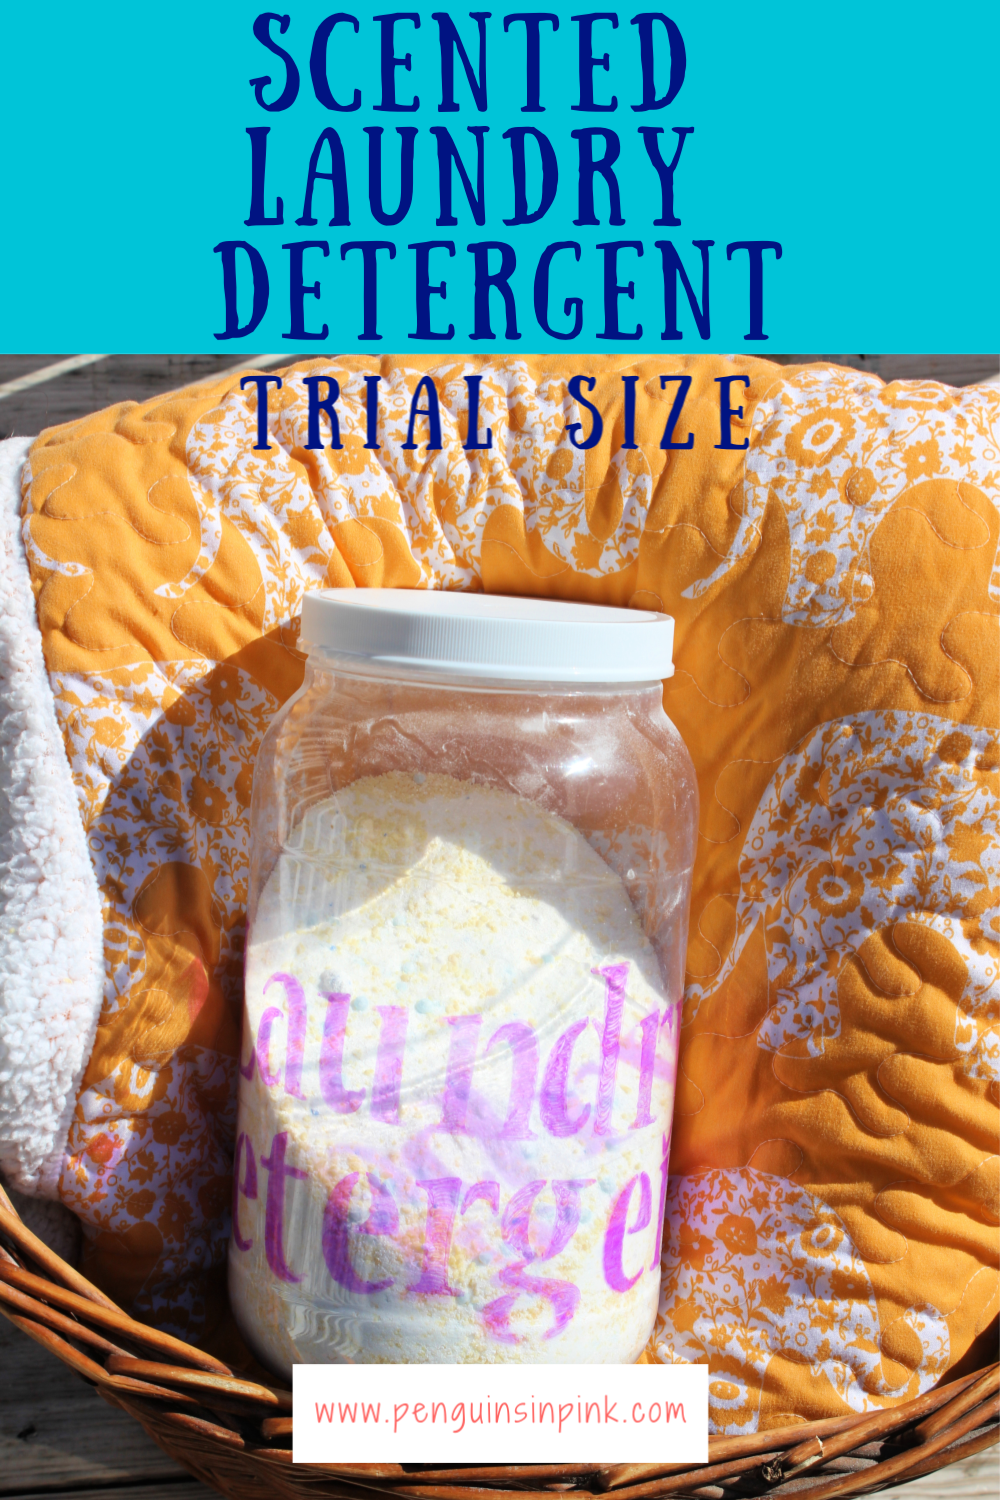 Trial Size Scented Laundry Detergent is perfect for you to test out if homemade laundry detergent is right for your family. It makes about 101 loads worth of detergent for less than $8.